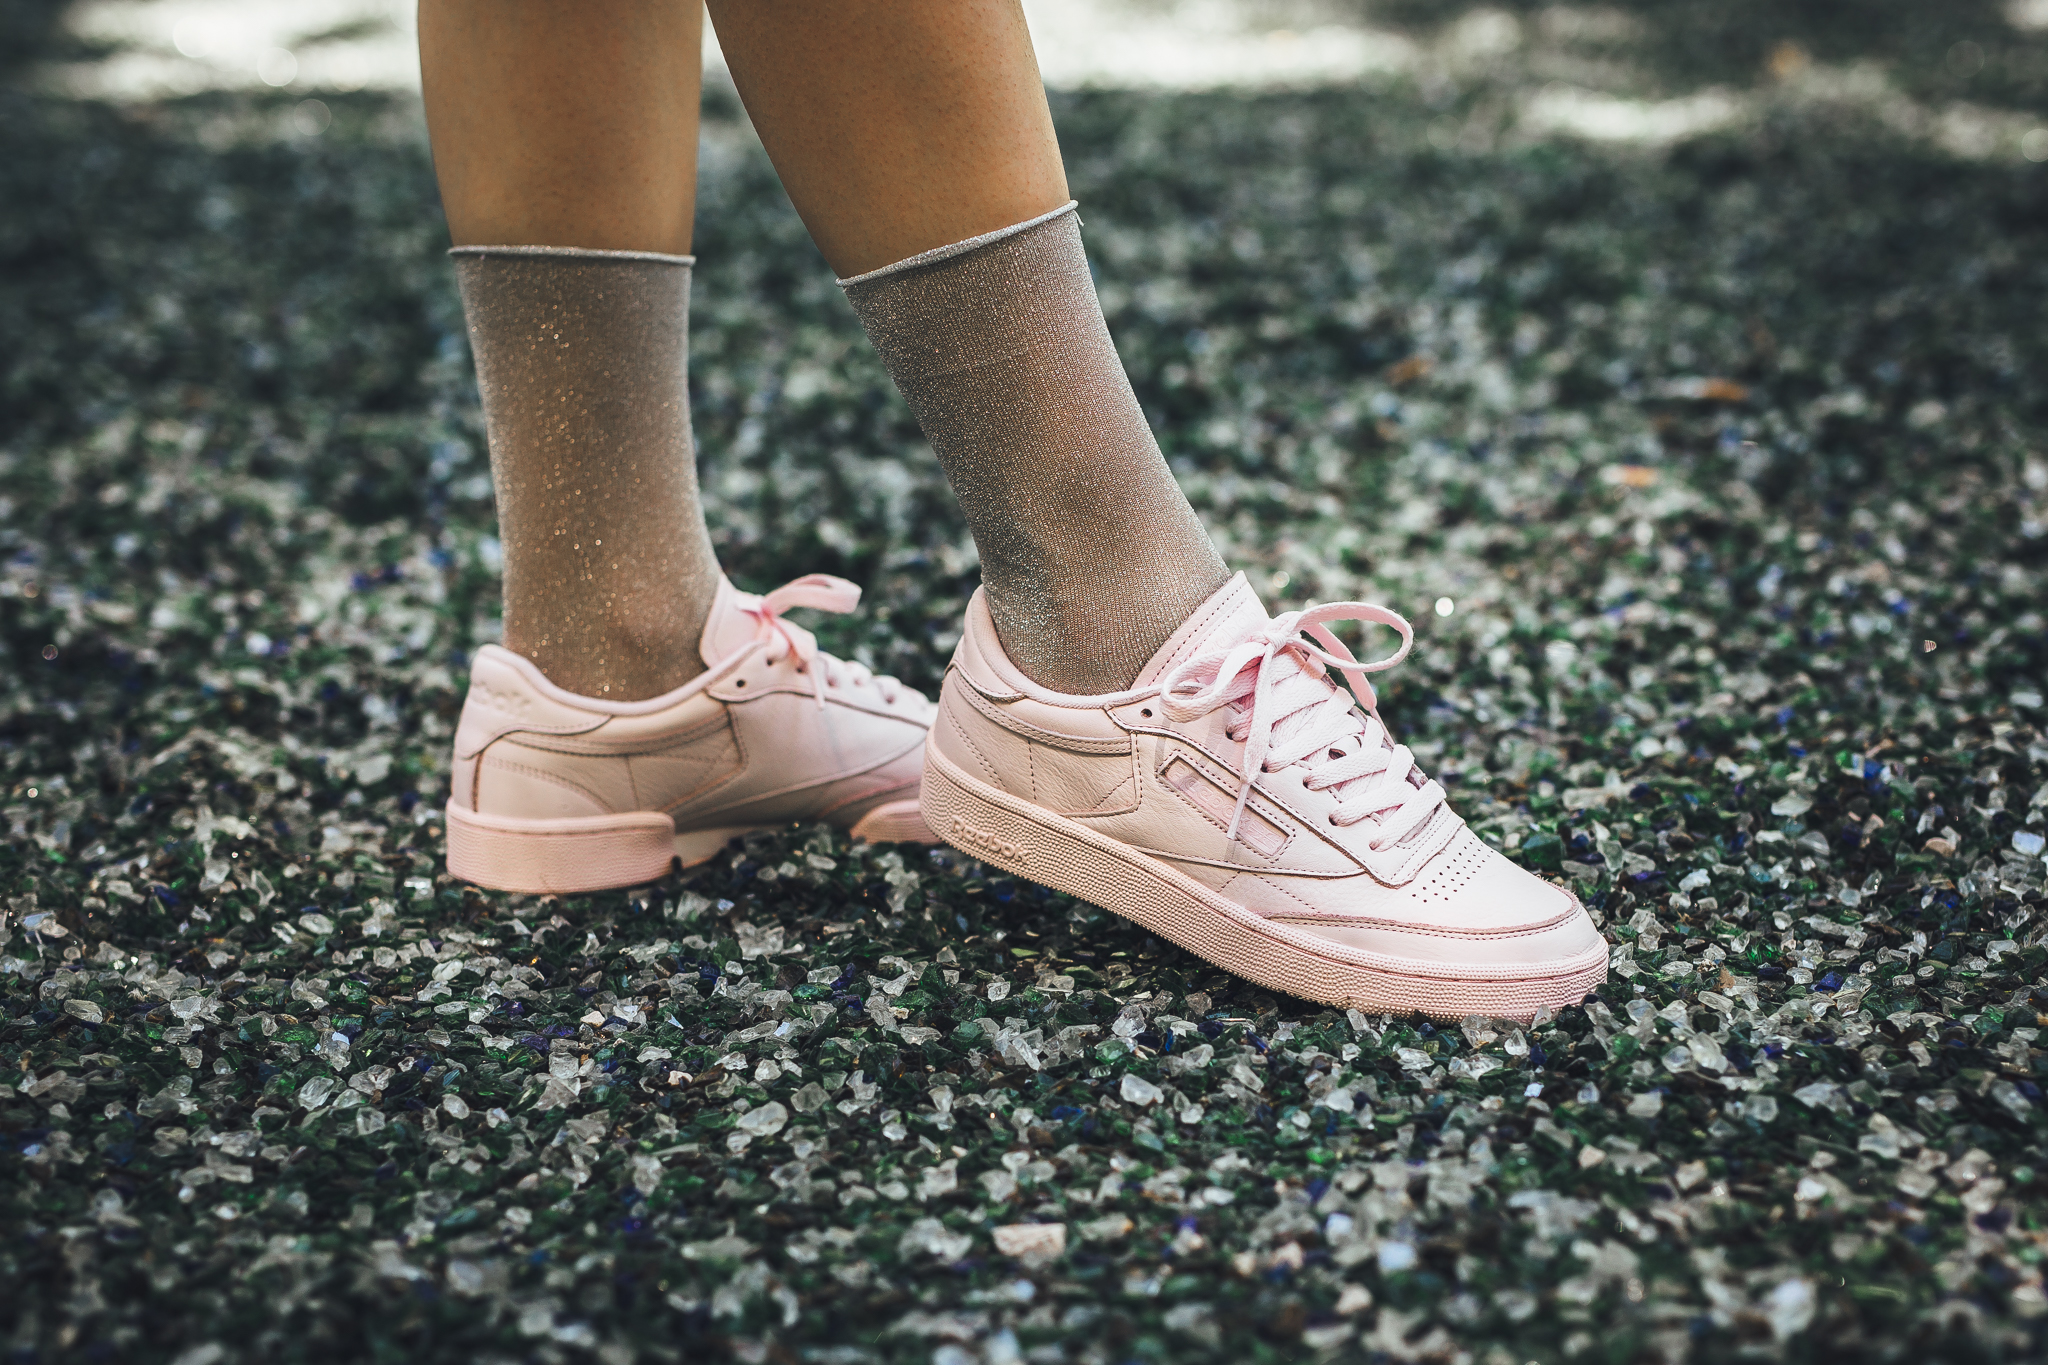 Spring pastel colors come to the classic Reebok Club C '85